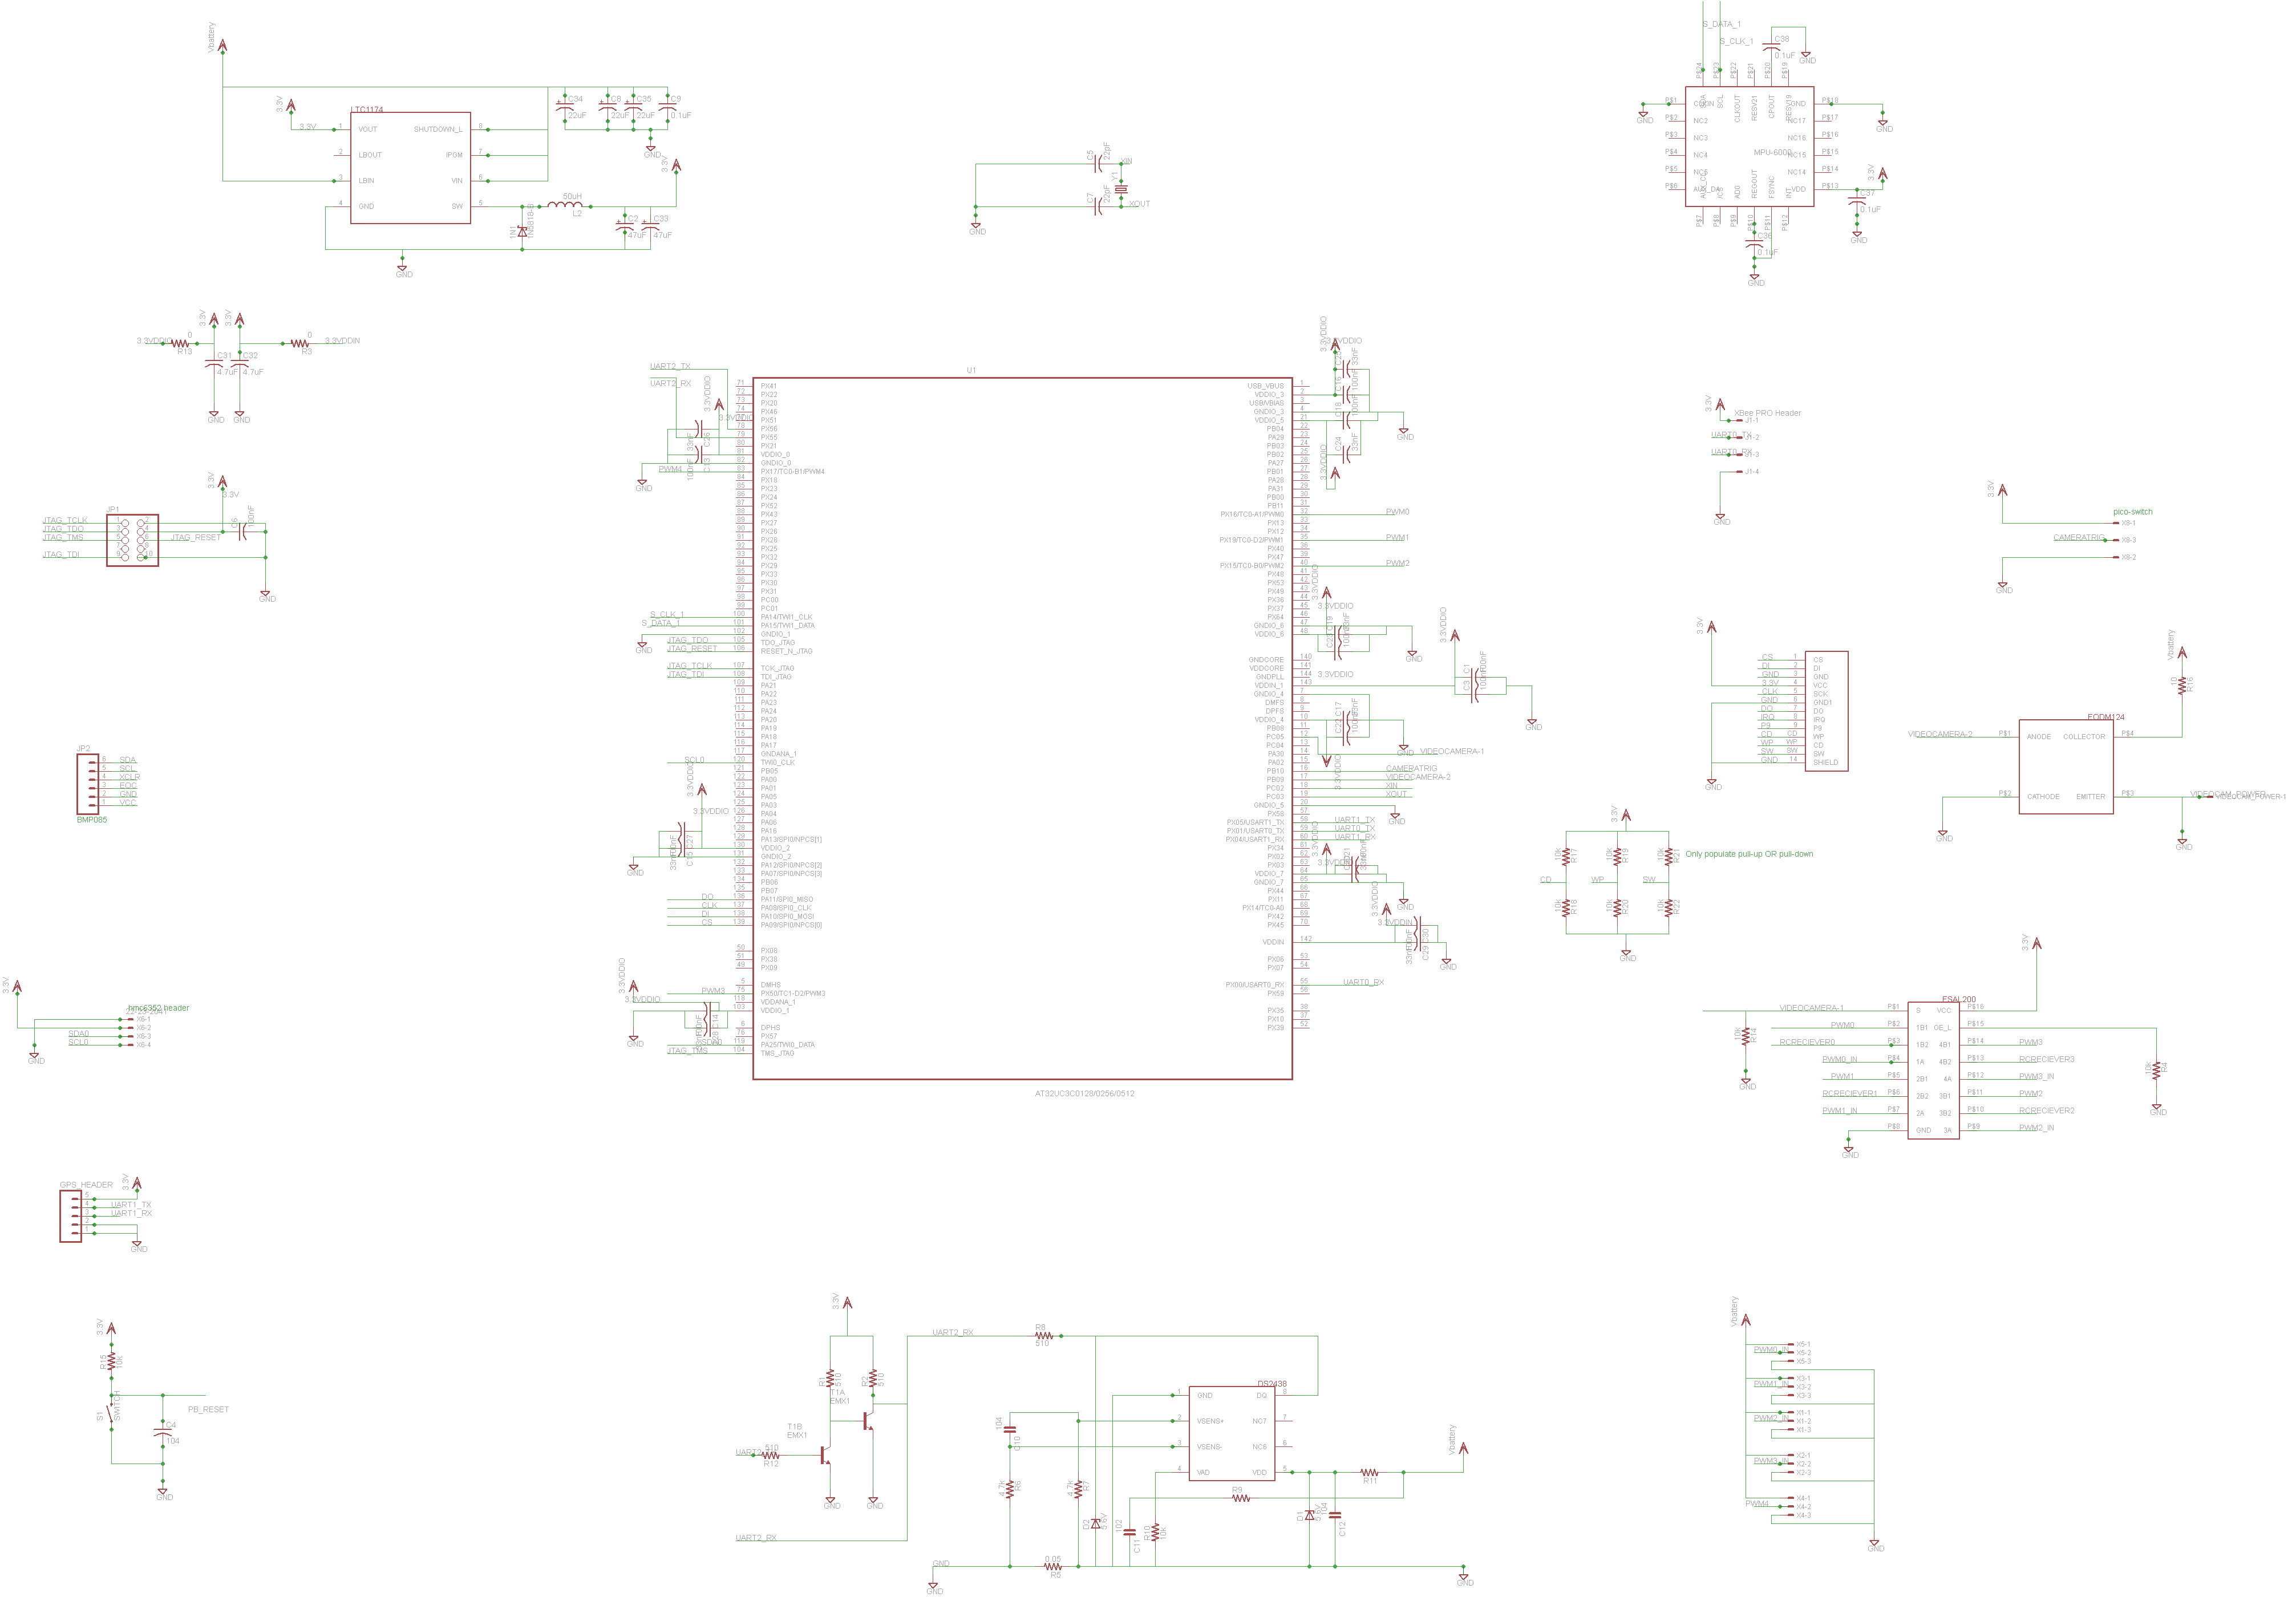 Samits Lab Notebook 6 Hour Timer Circuit Diagram February 16 2012 Hours I Finished The Preliminary Schematic It Can Be Accessed Below